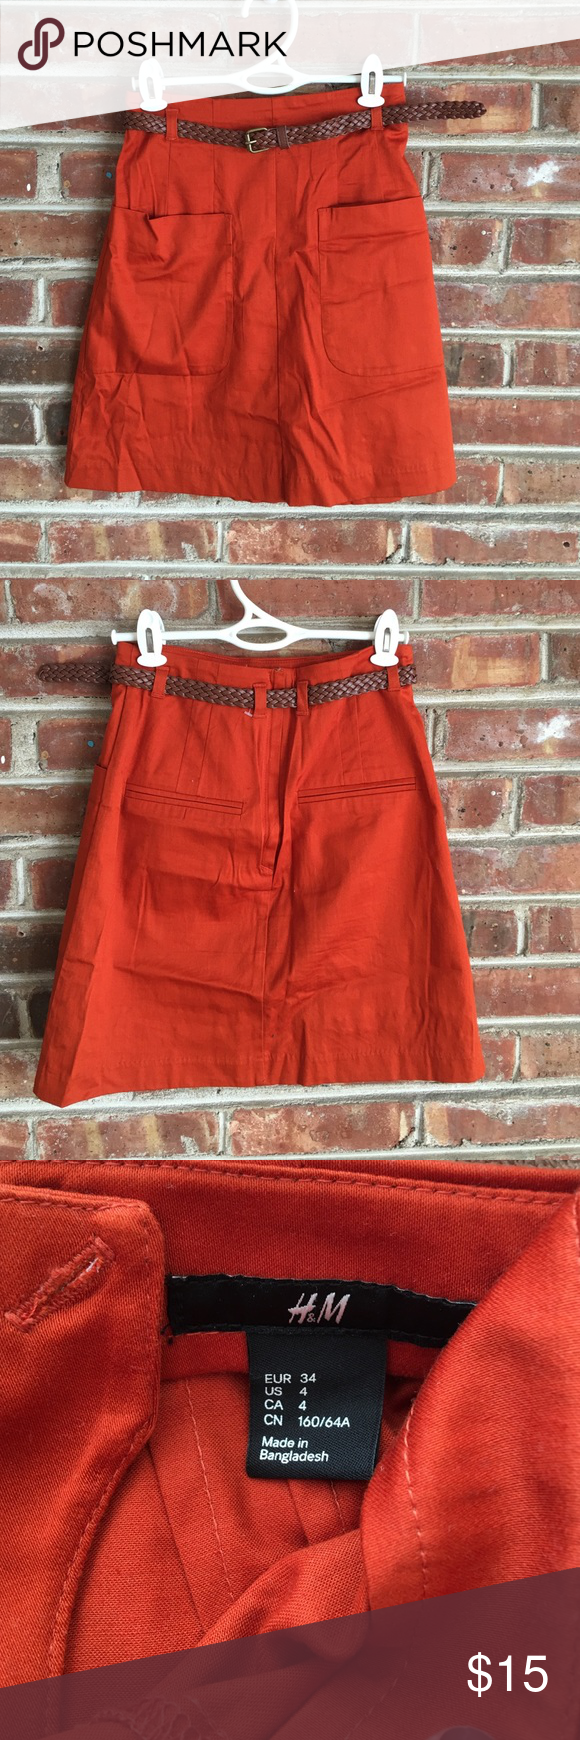 {last chance item} H&M high waisted A-line skirt 4 Beautiful orange high-waisted A-line skirt with front pockets. Perfect for fall with cognac boots! Can be worn casually or in the office. Has functional front pockets, hidden back zip, includes belt. Has never been worn - new without tags and no defects. Please note that this is a size 4, but runs small. Measures approximately 12.5 inches across the waist and approximately 18 inches long. No modeling and no trades. Sorry, slightly wrinkled…